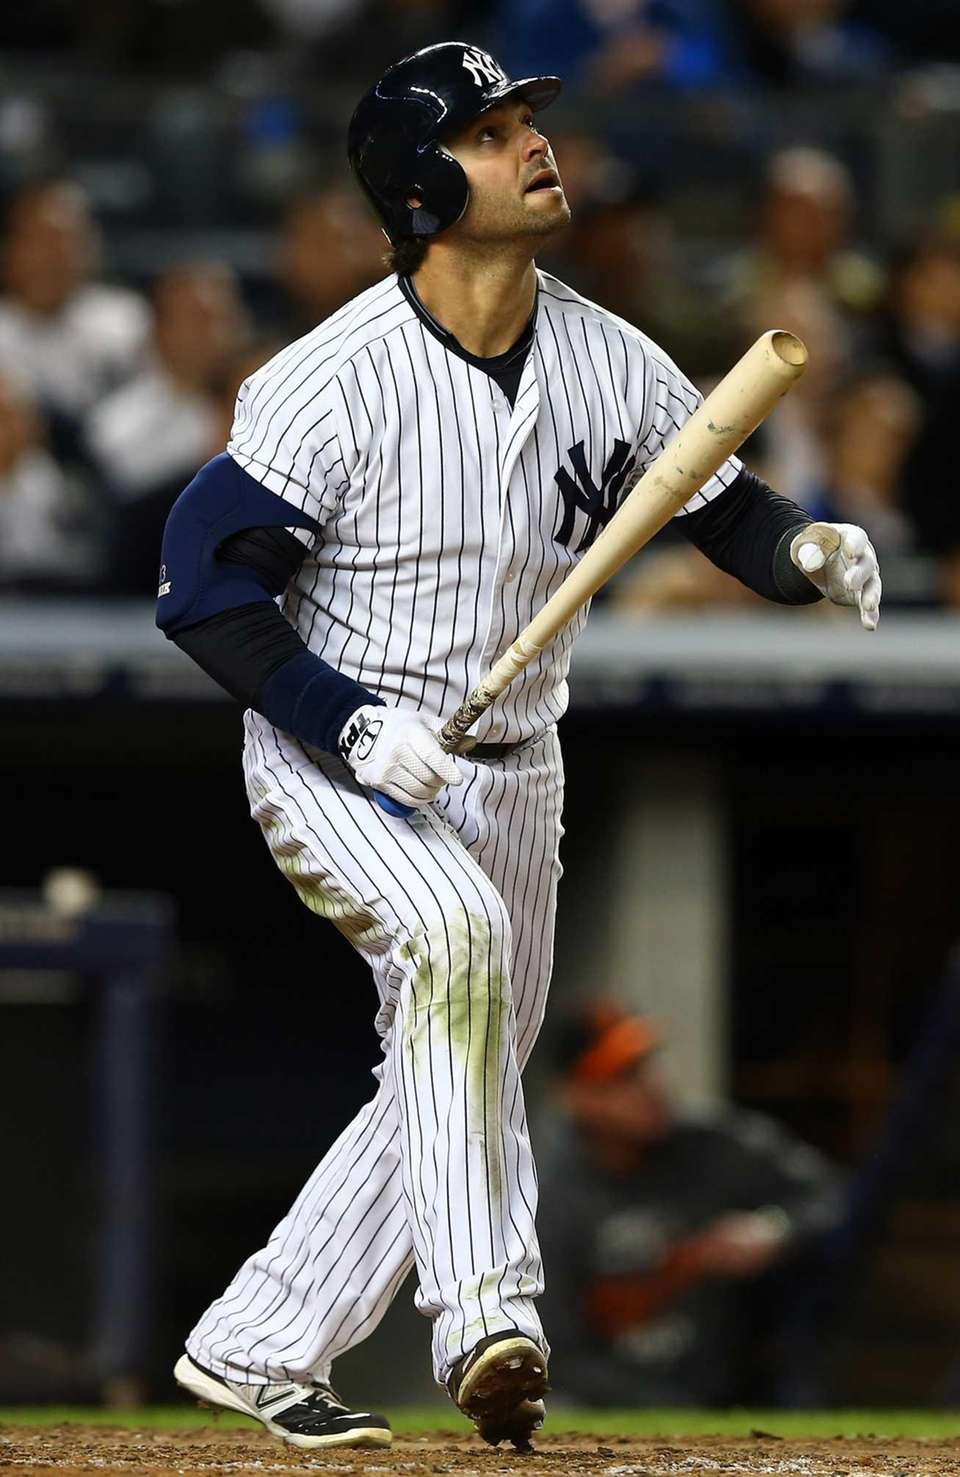 Nick Swisher hits a pop fly during Game